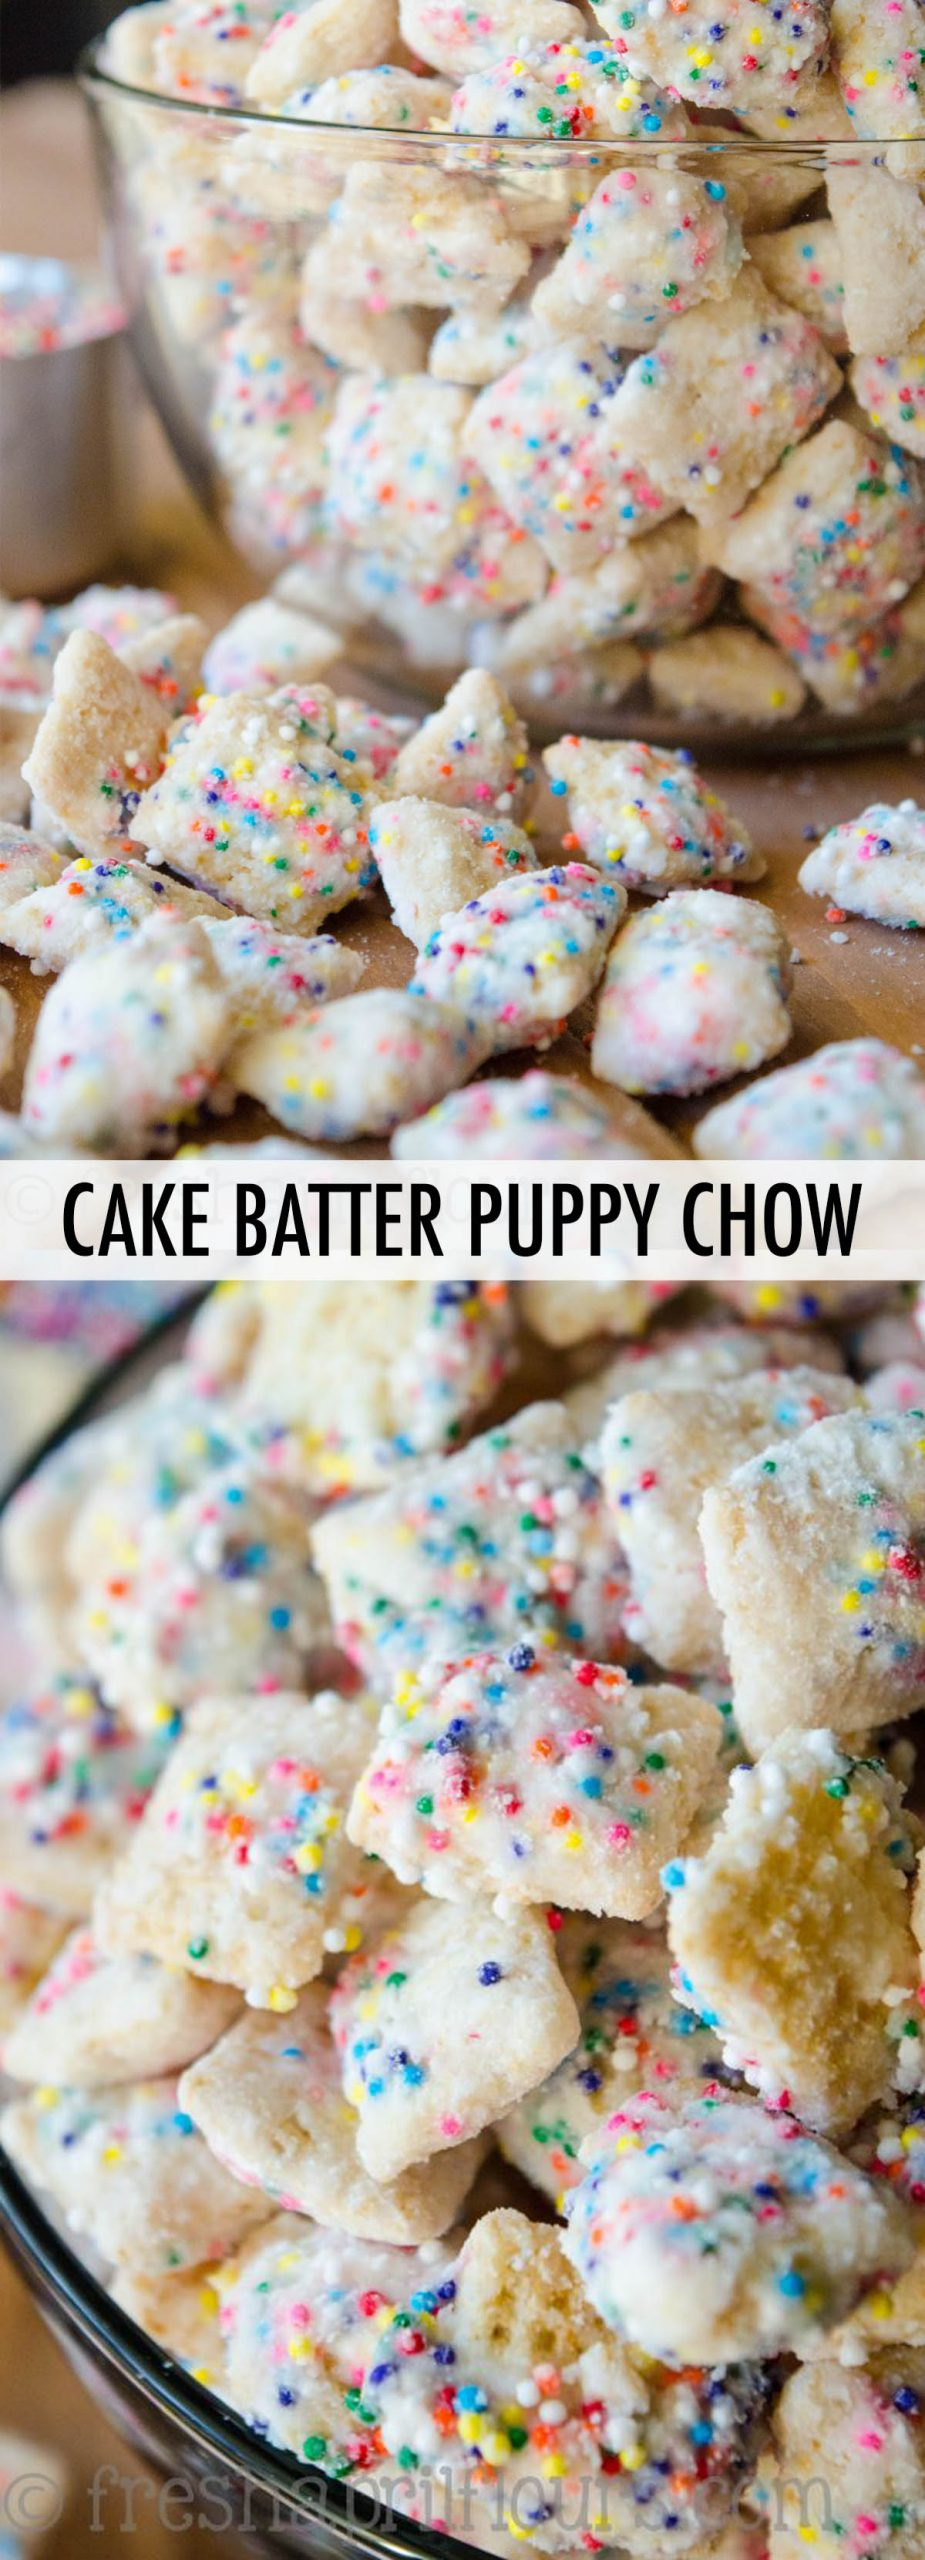 A crunchy, cake-battery take on the classic Puppy Chow!